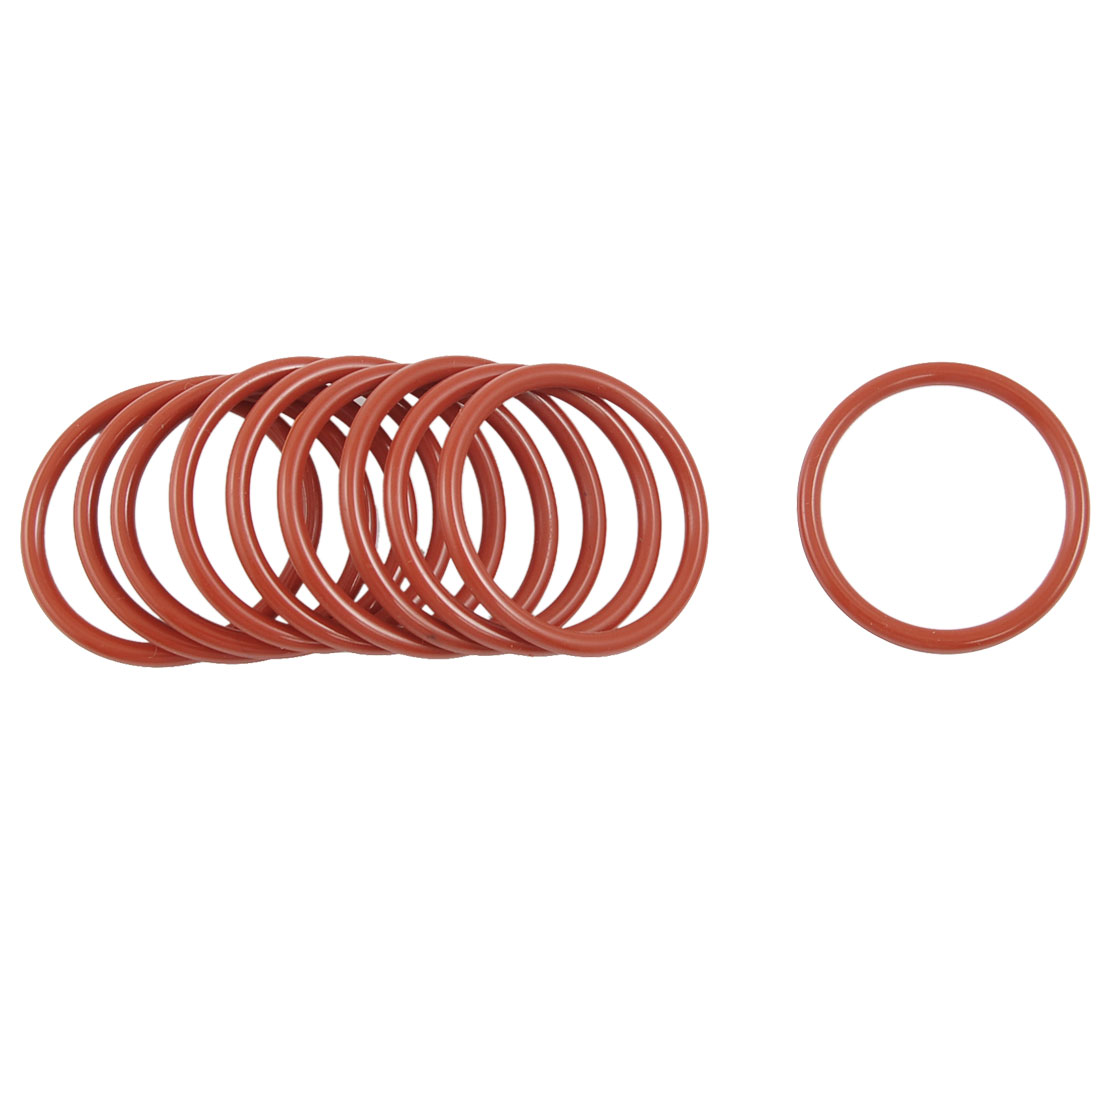 10 Pcs 38mm OD 3mm Thickness Dark Red Silicone O Rings Oil Seals Gasket